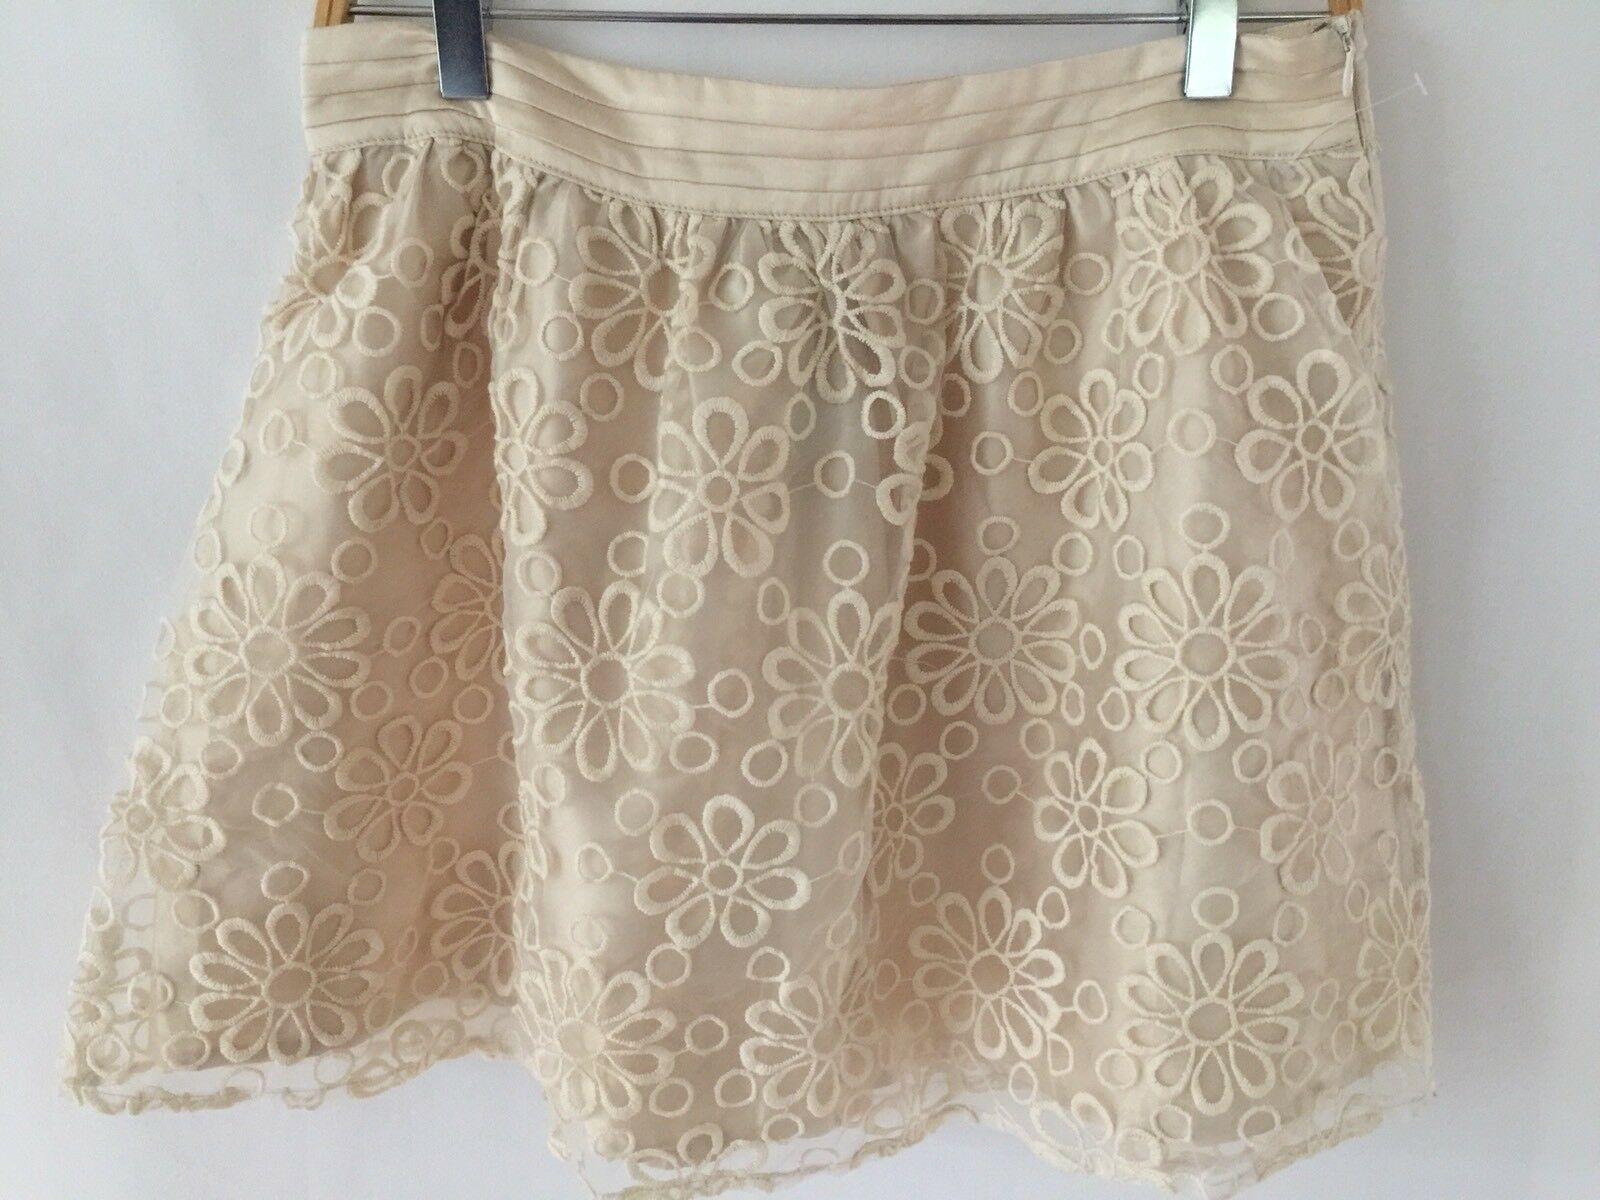 NWT Mod Cloth Alice Moon Collection Los Angeles Cream Lace Flowers Skirt - Large